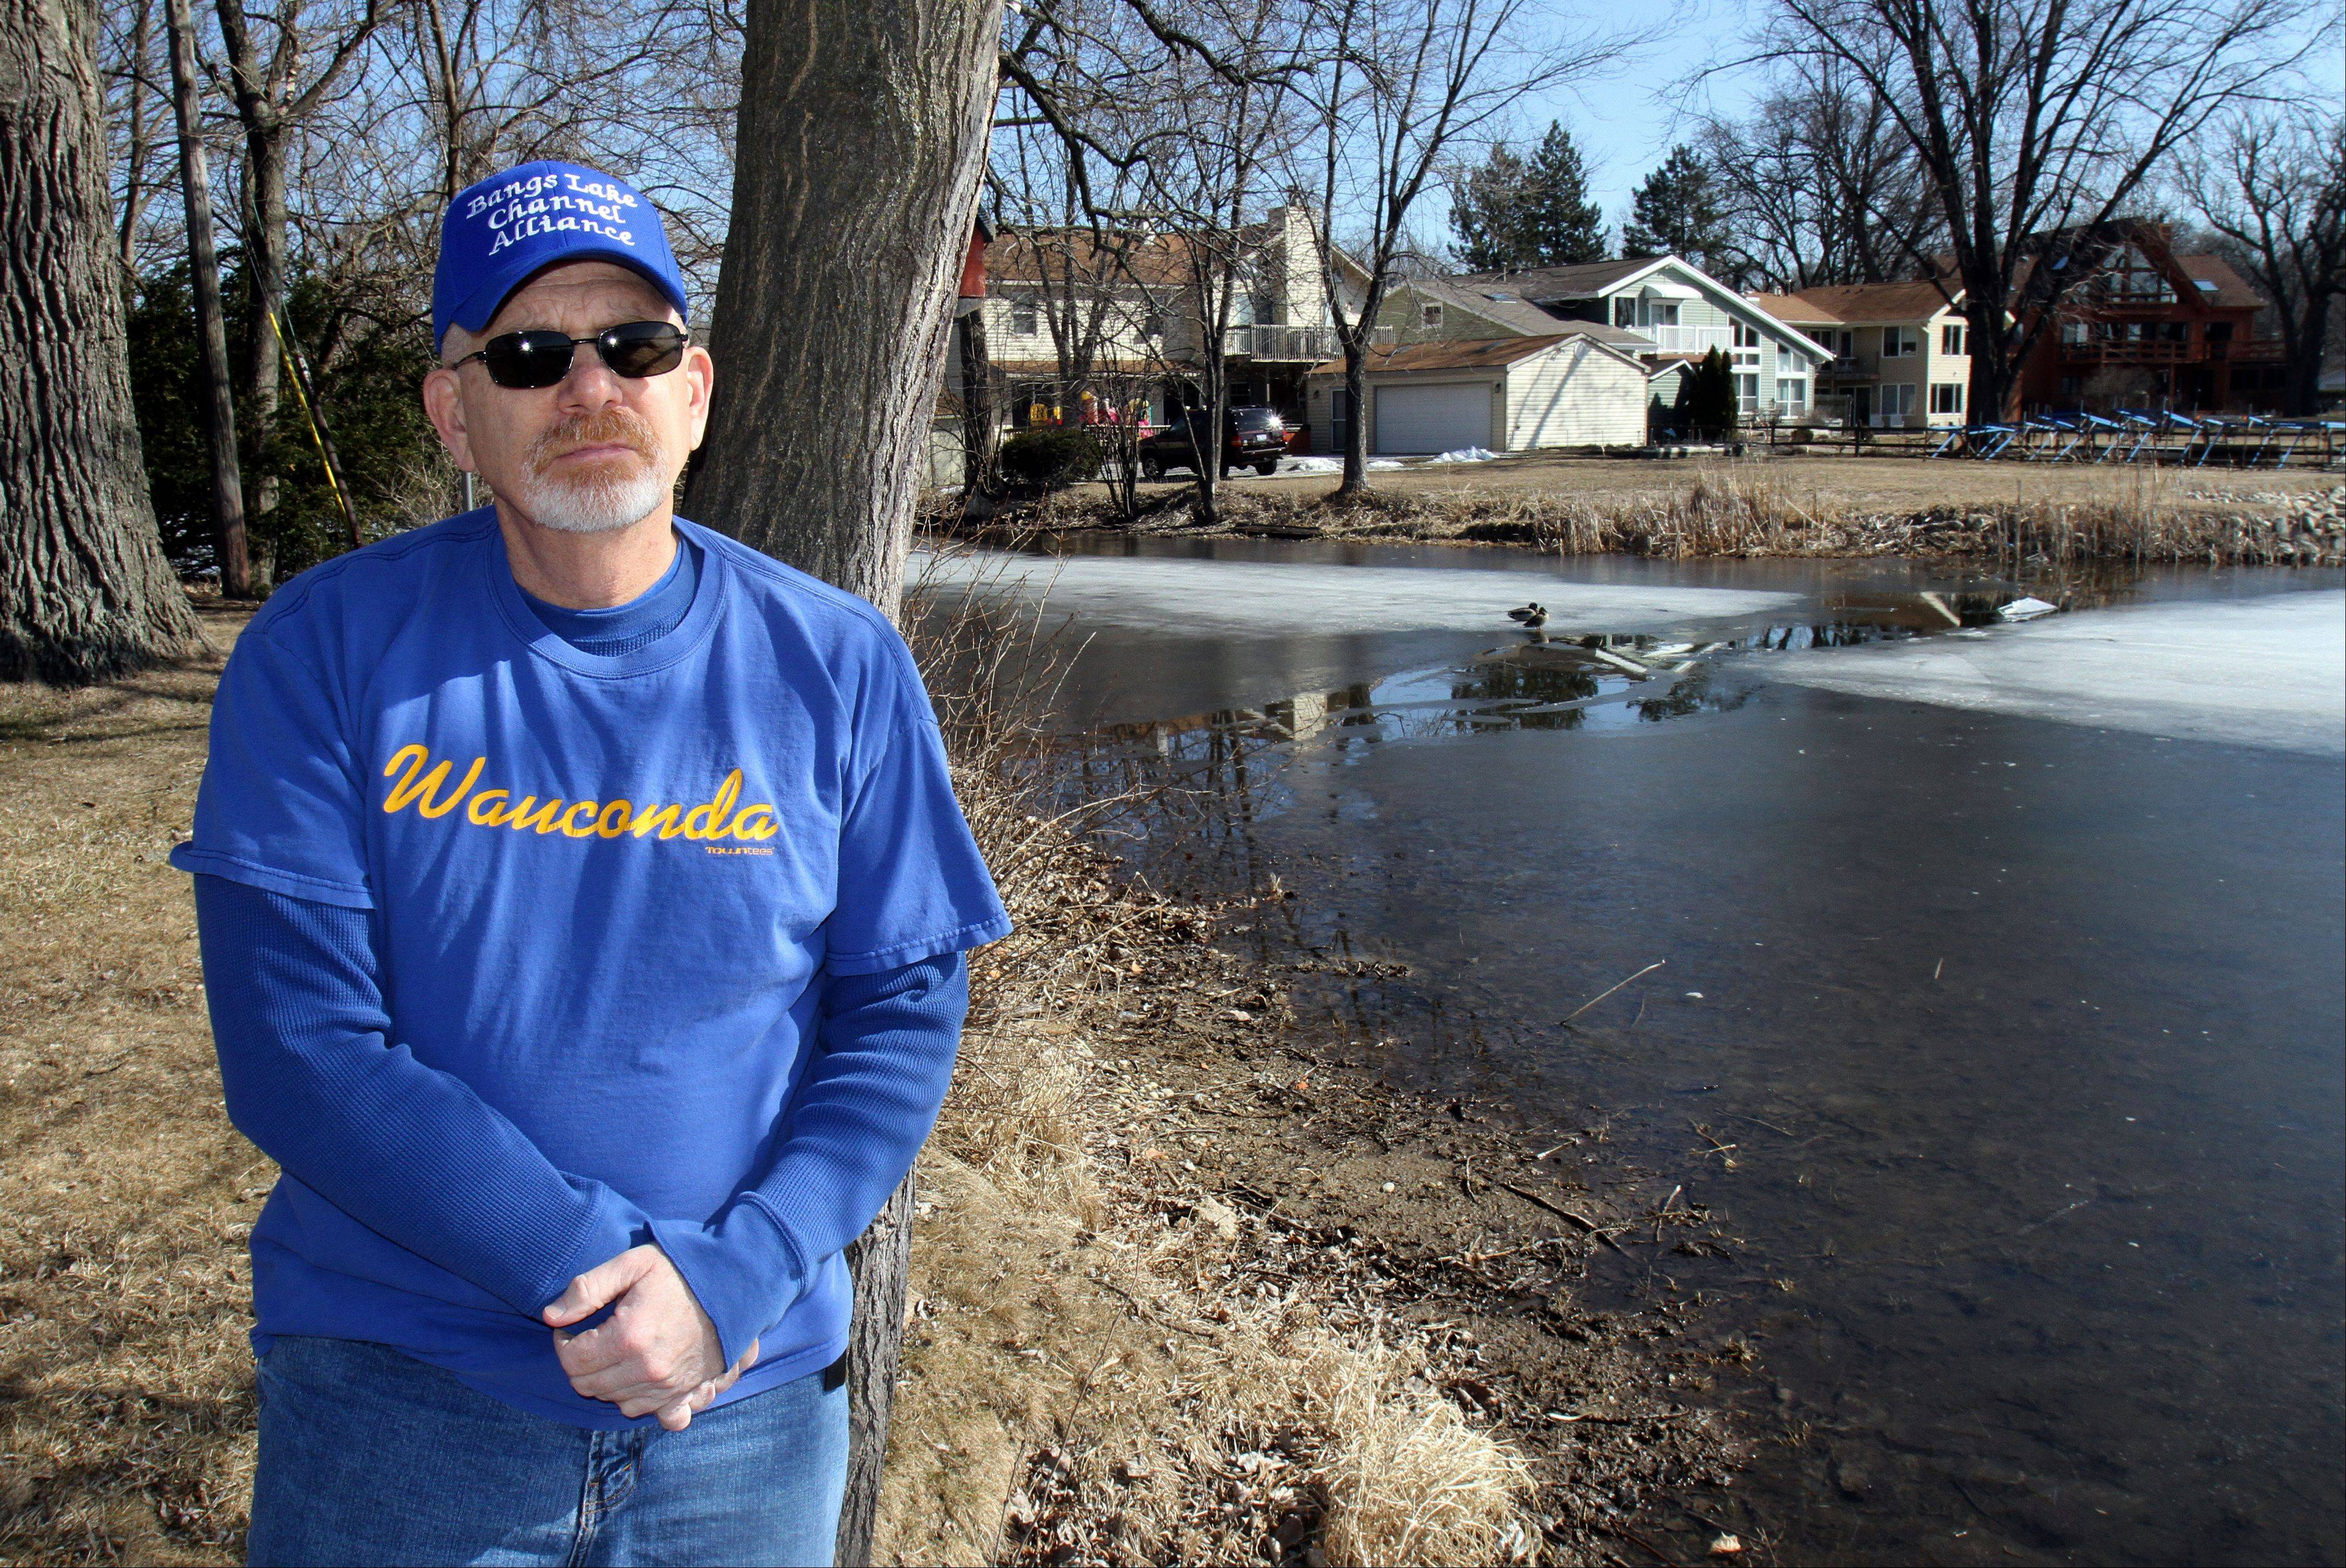 Wauconda resident Jack Marcus is concerned about the depth of the channel that runs behind his home and feeds into Bangs Lake. He said the depth is under 1 foot, and he can't access the lake with his boat.